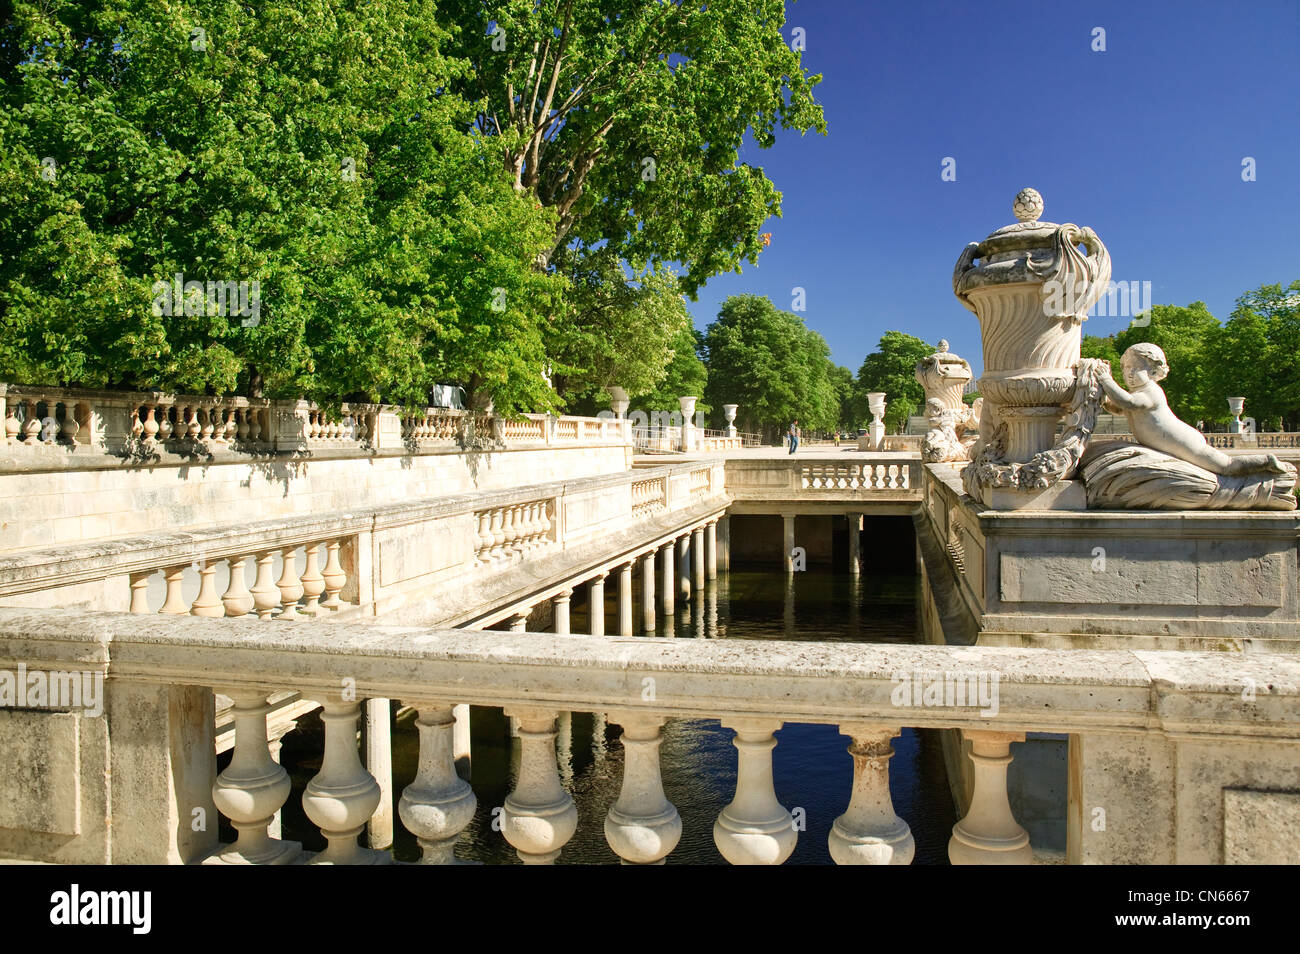 Jardins de la fontaine nimes gard languedoc roussillon france stock photo royalty free image - Jardin de la fontaine nimes limoges ...